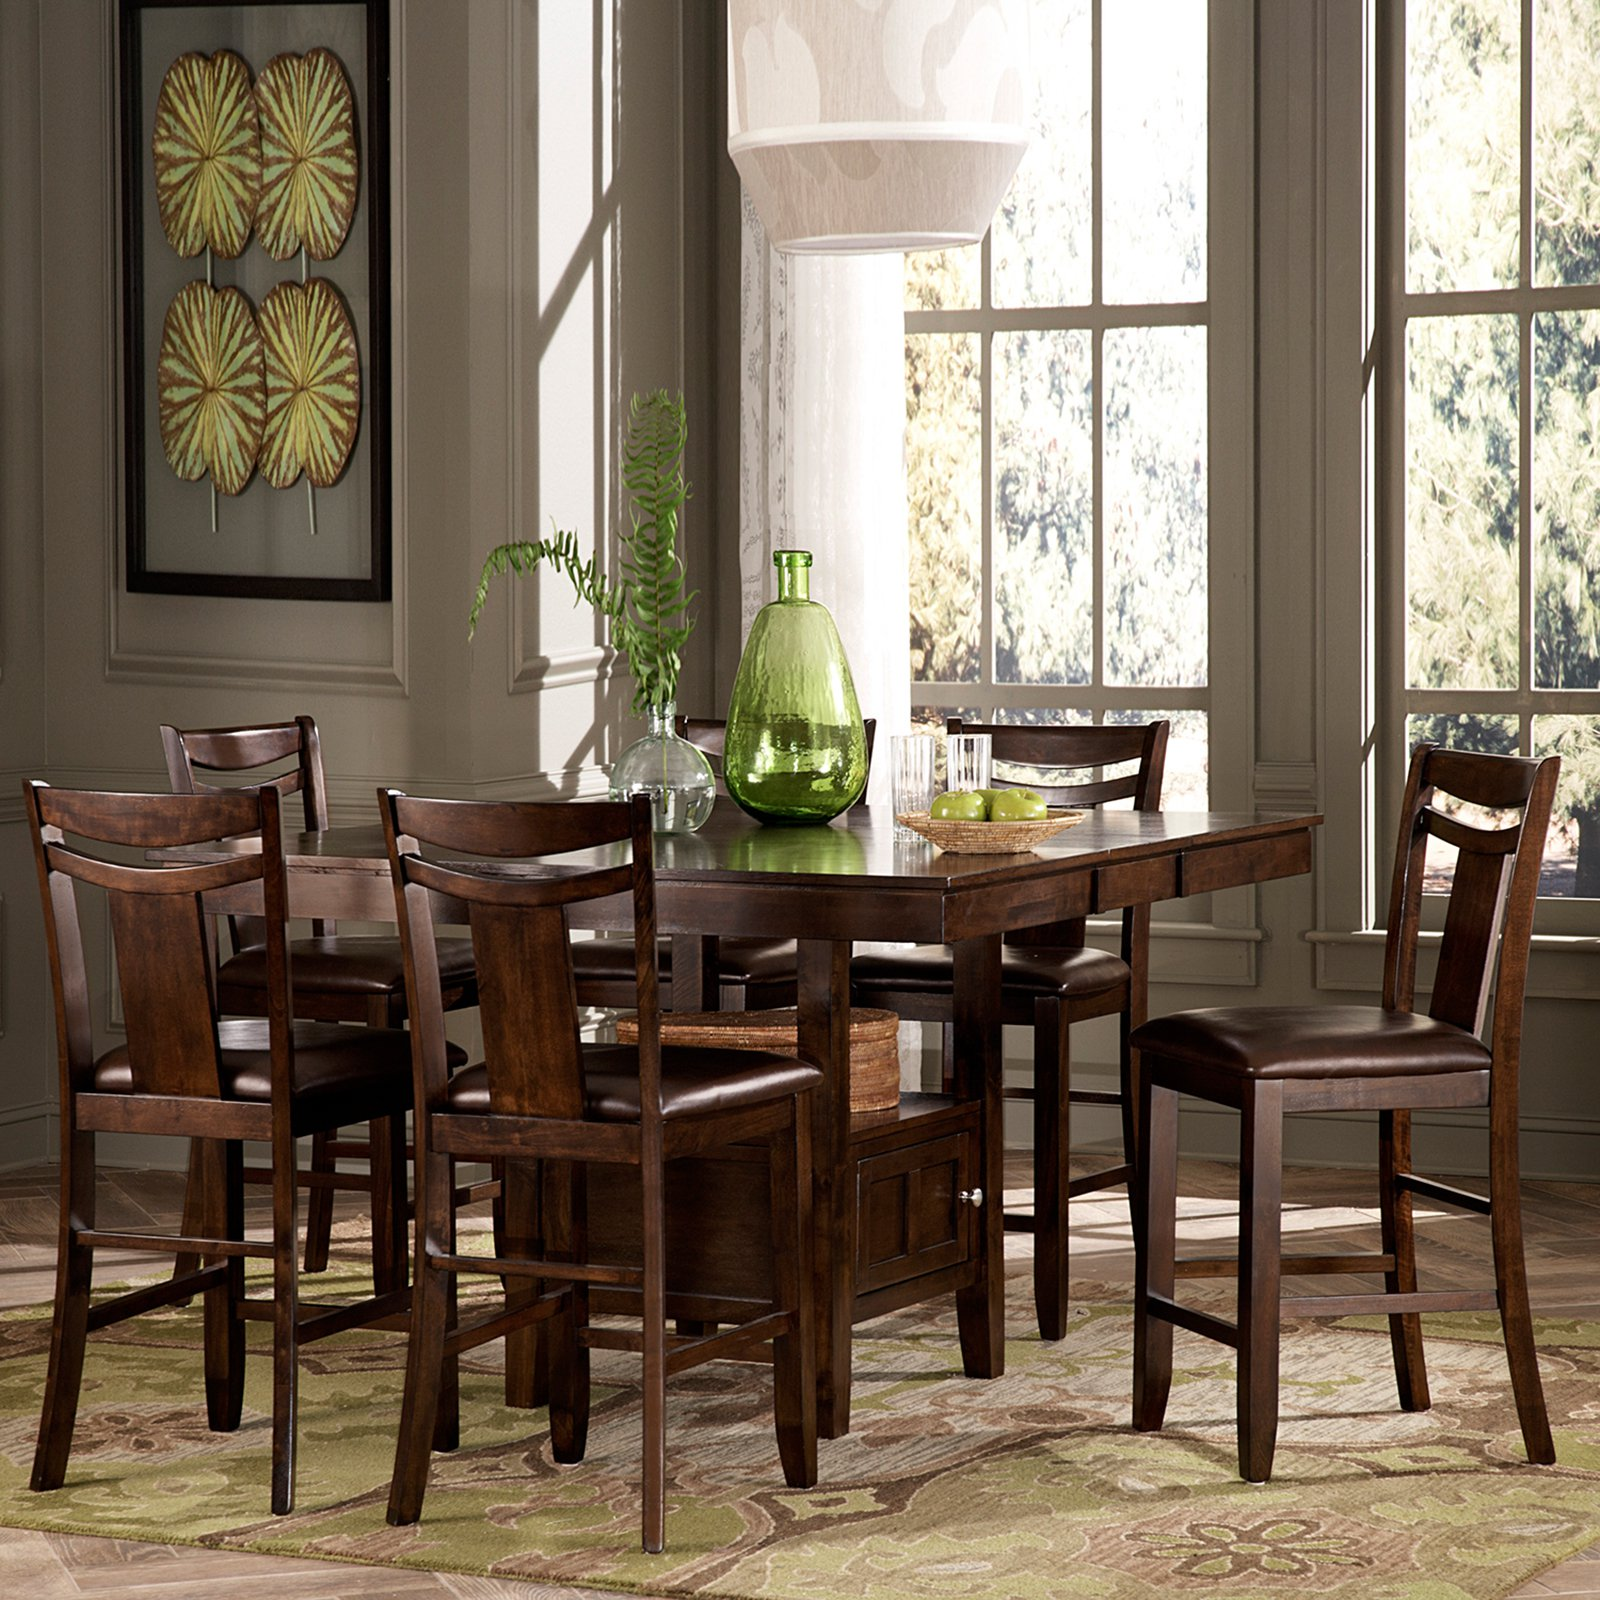 Weston Home Broome 7-Piece Counter Height Expandable Storage Dining Table Set - Dark Brown